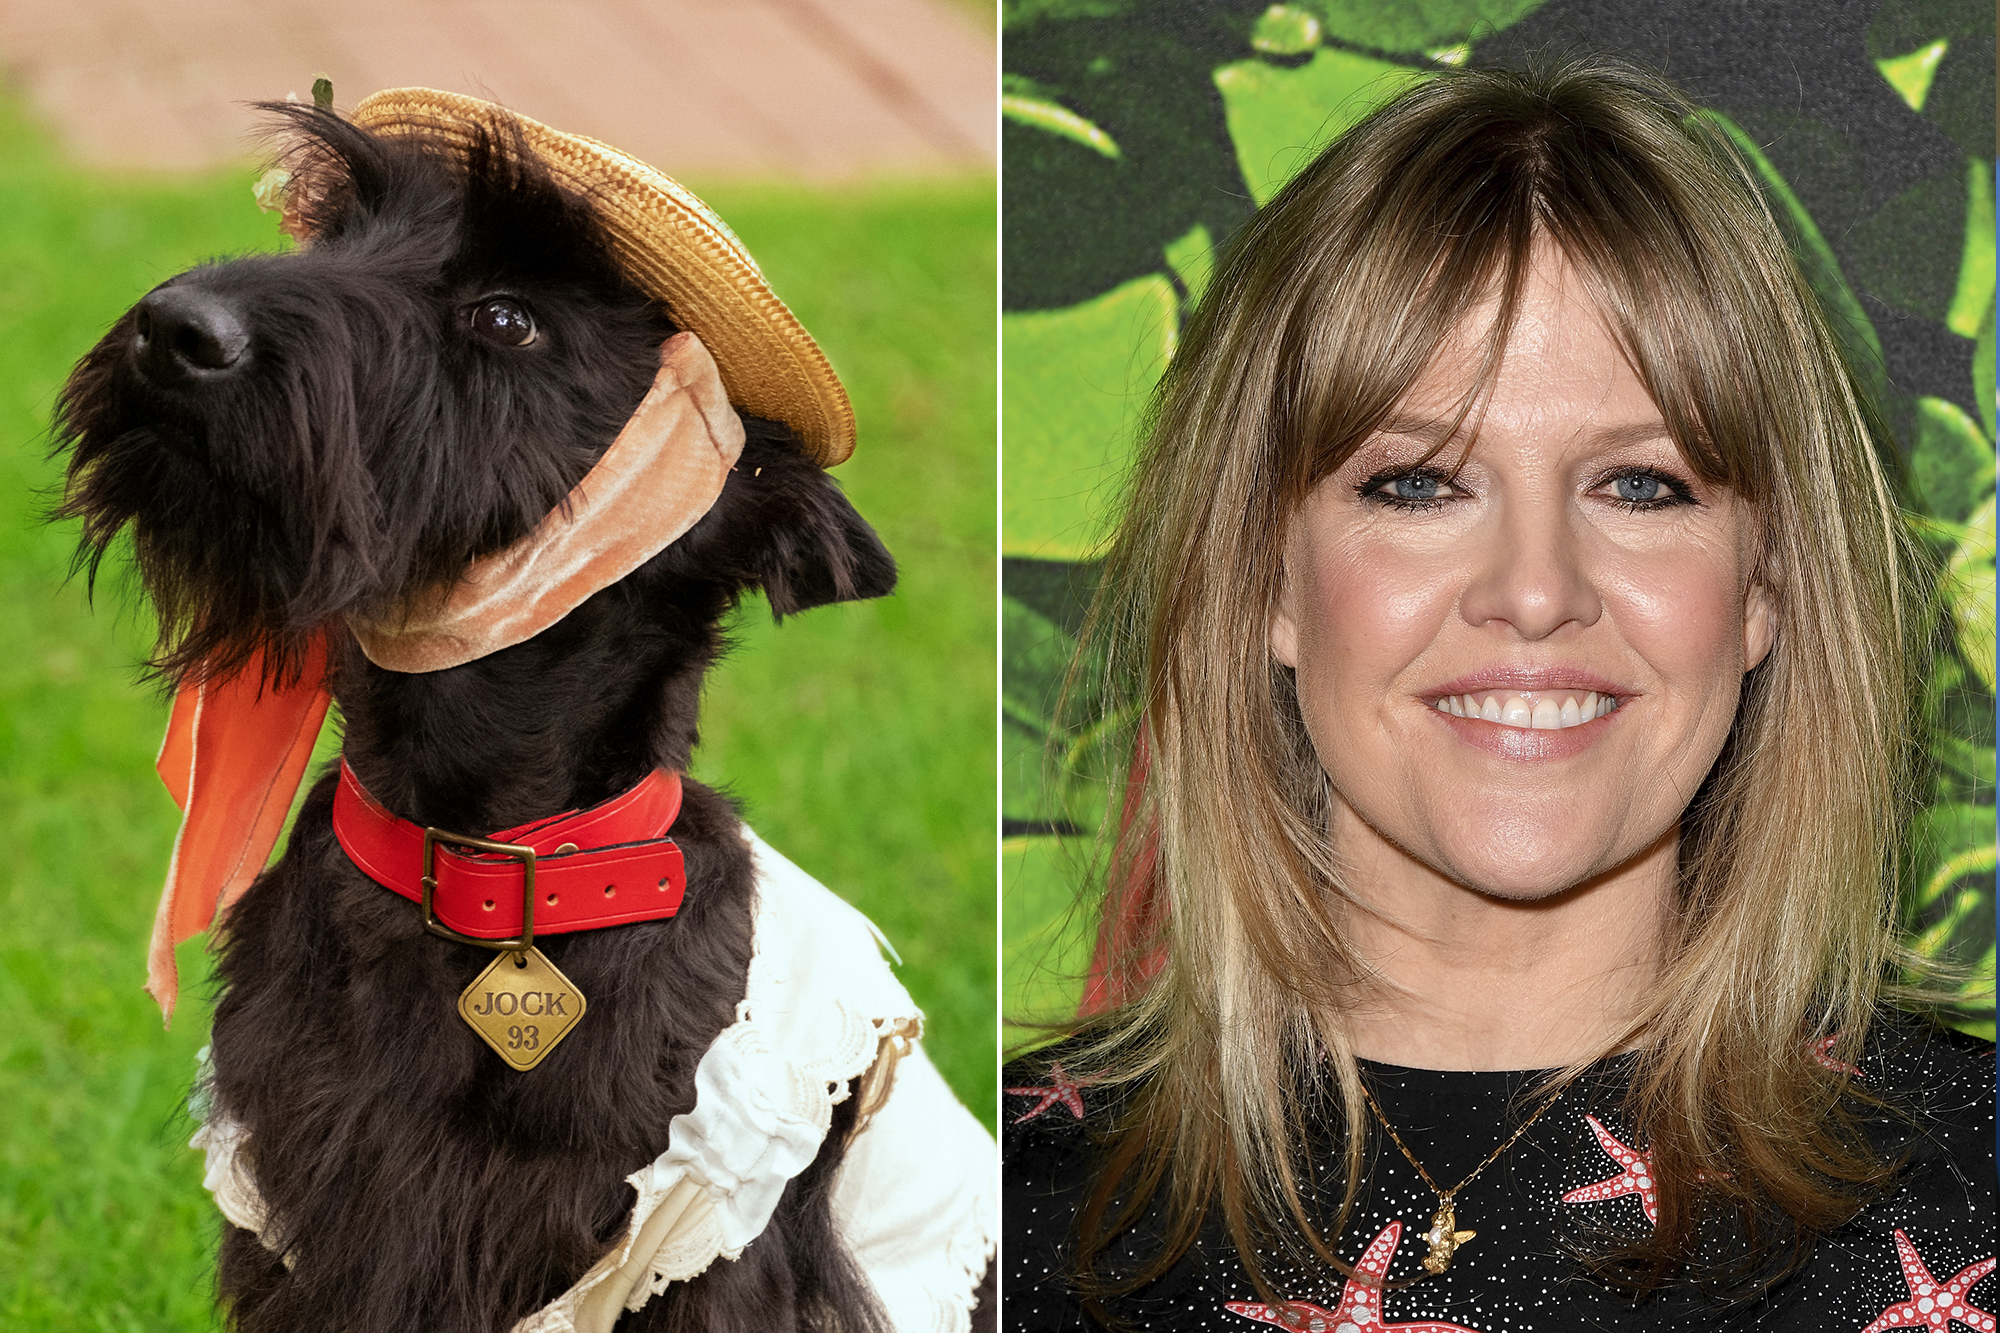 Live Action Lady and the Tramp Movie Ashley Jensen as Jock